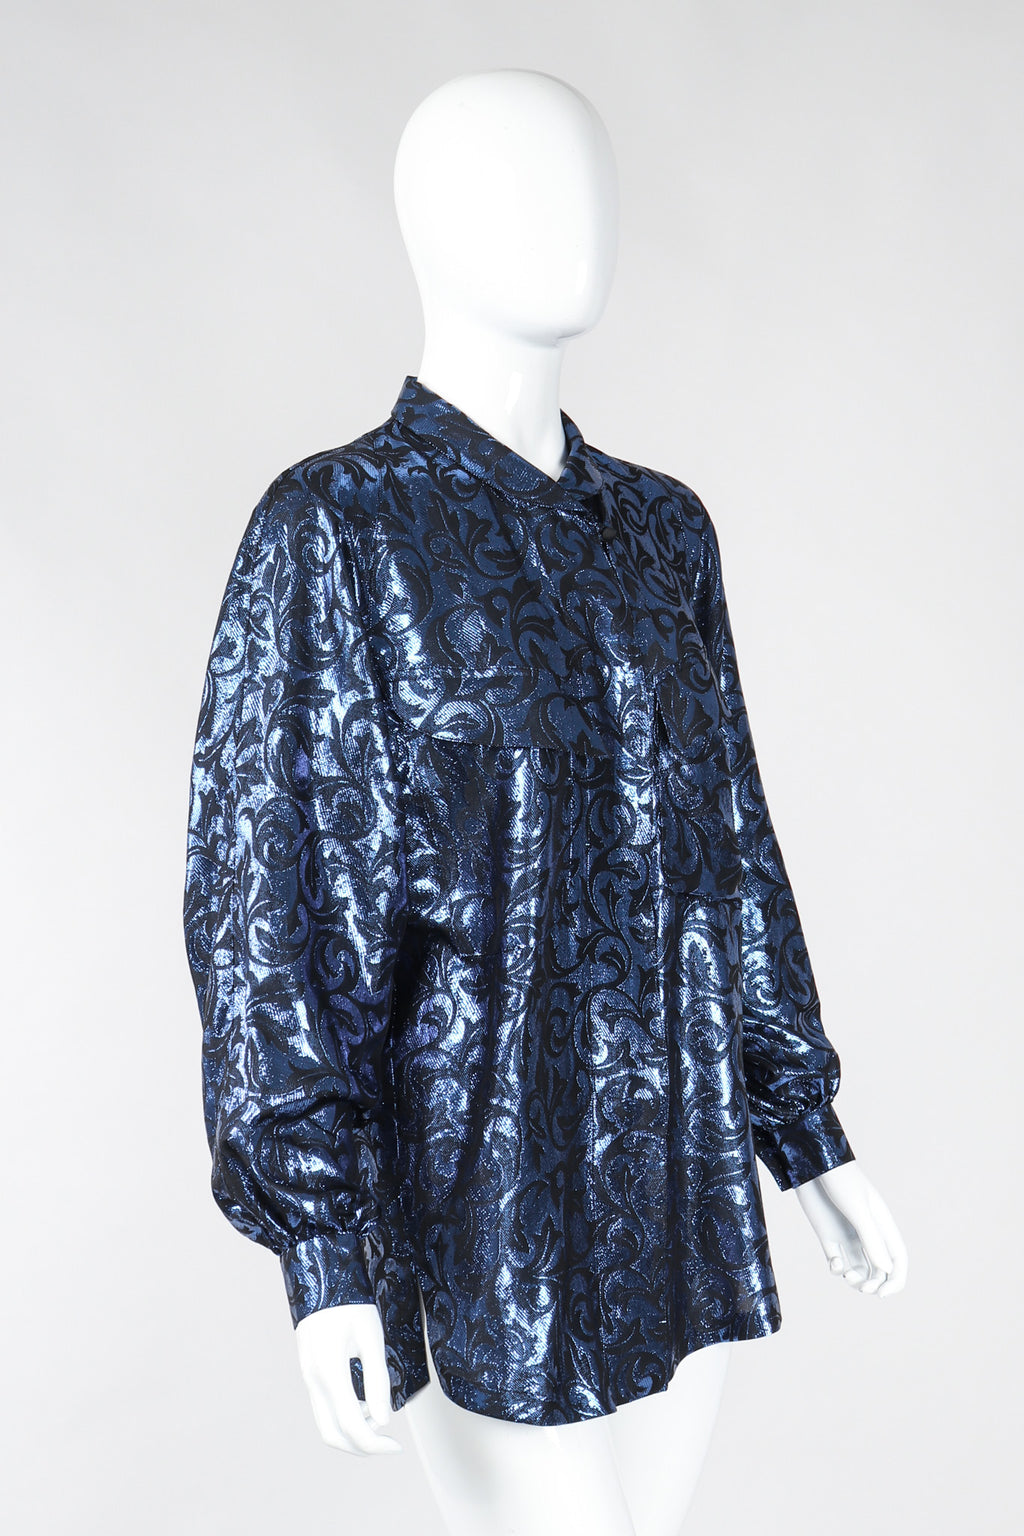 Recess Los Angeles Vintage Escada Metallic Lamé Damask Pajama Pyjama Blouse